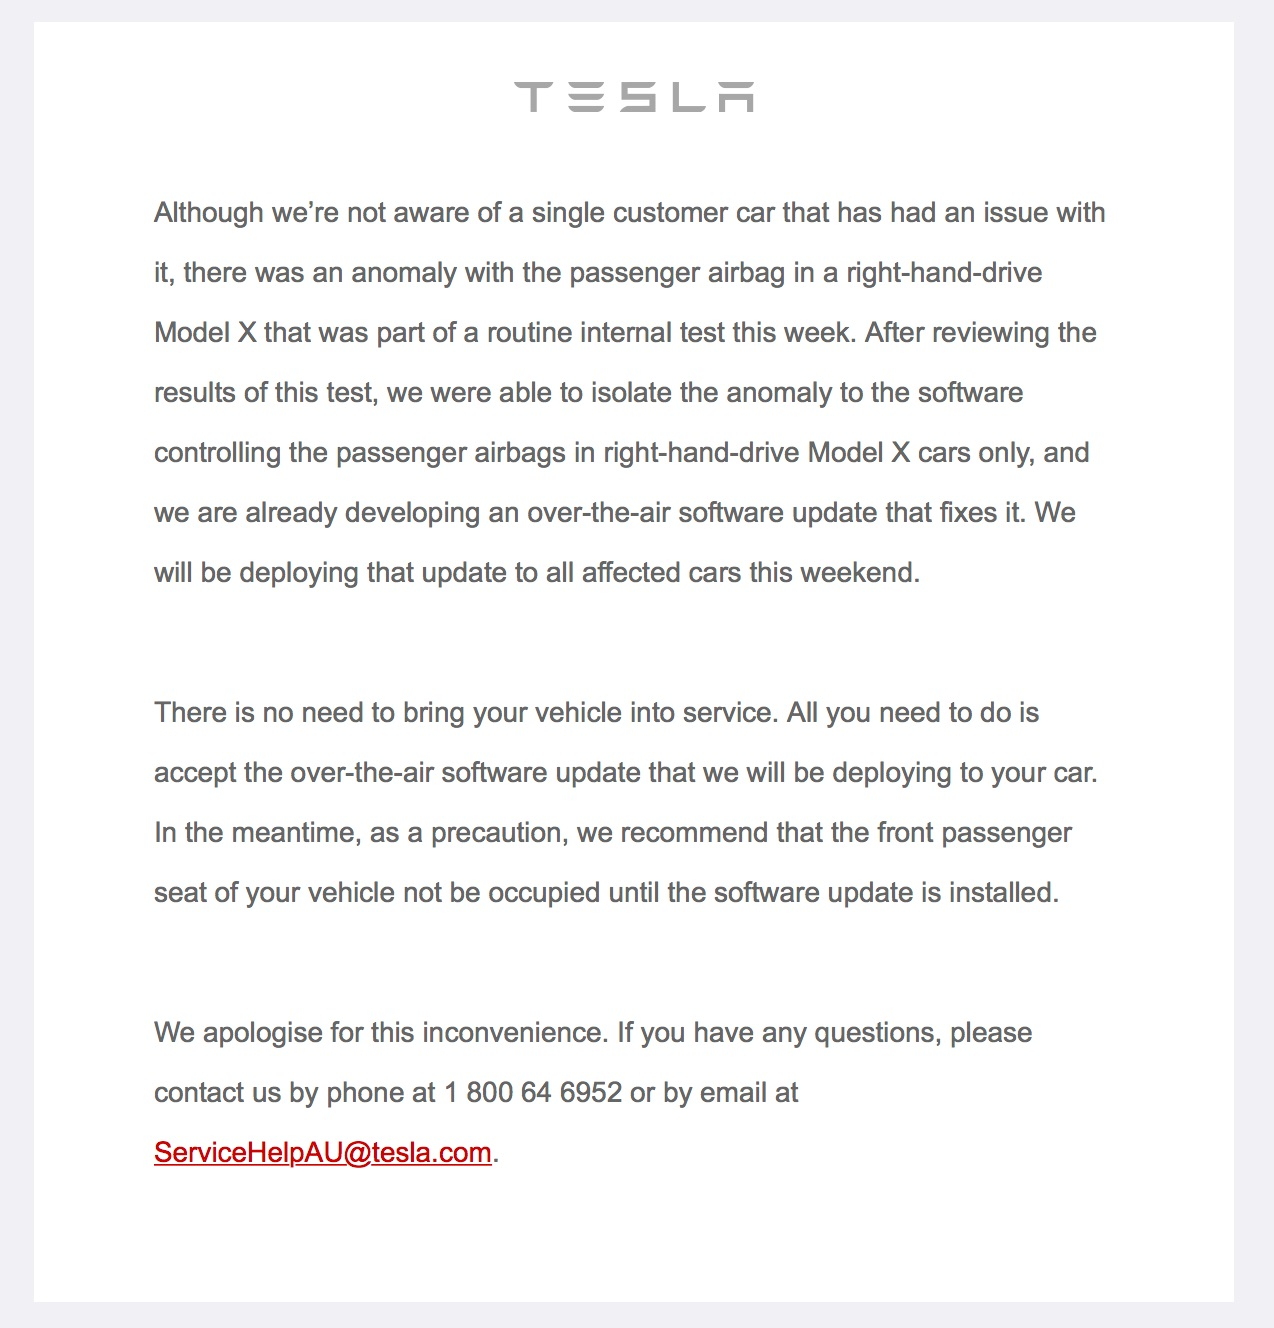 tesla-model-x-safety-notice-airbag-controller